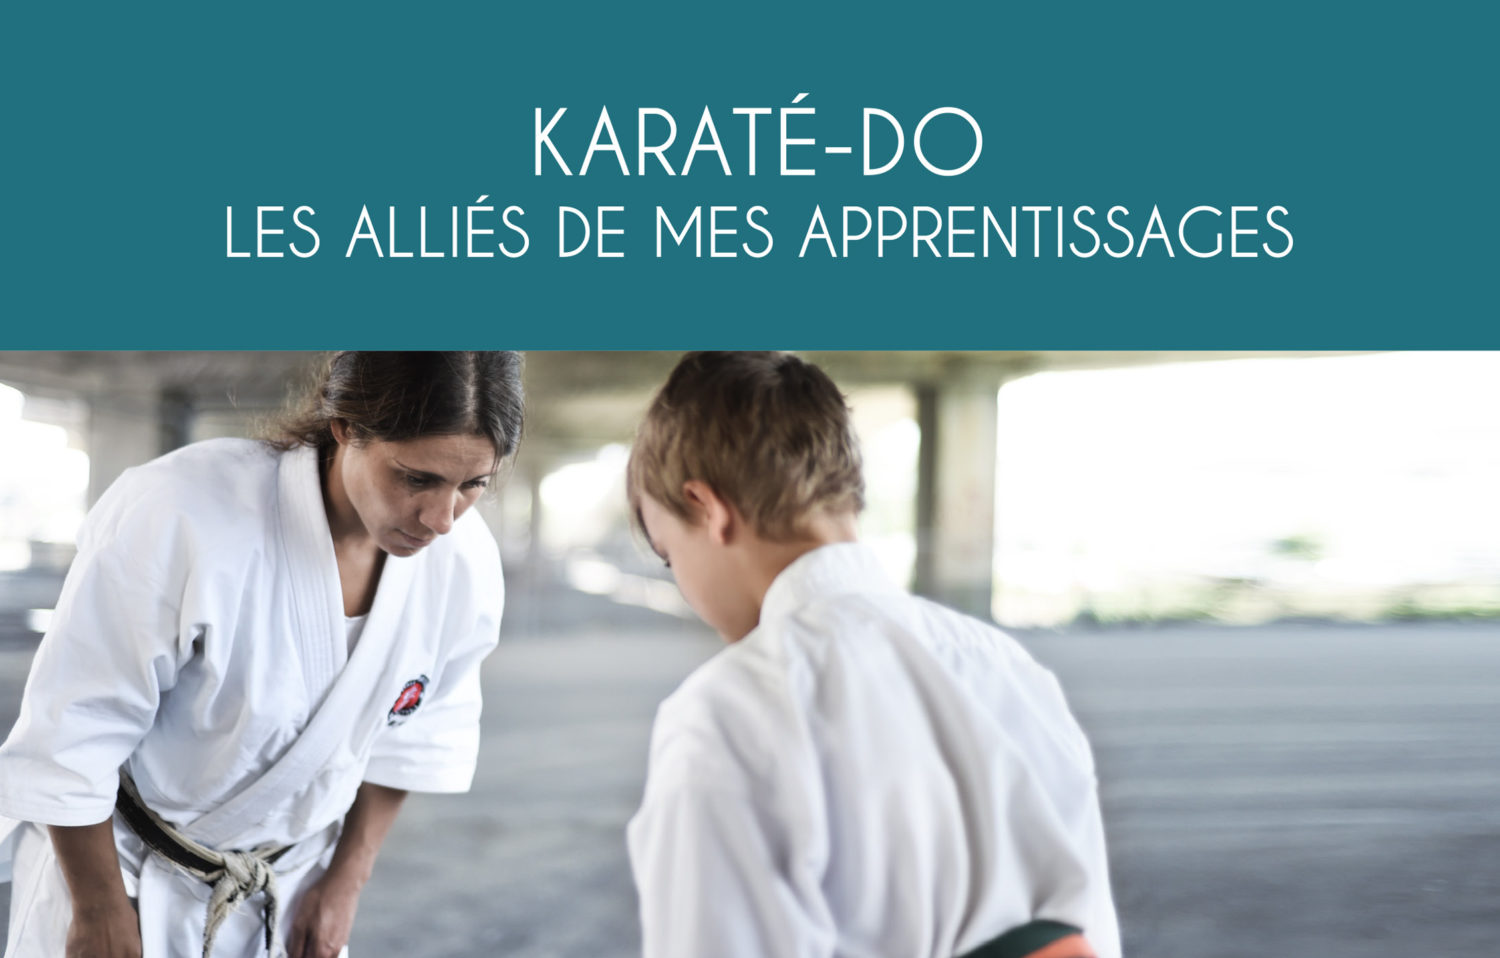 L'École martiale : KARATÉ-DO Les Alliés de mes apprentissages